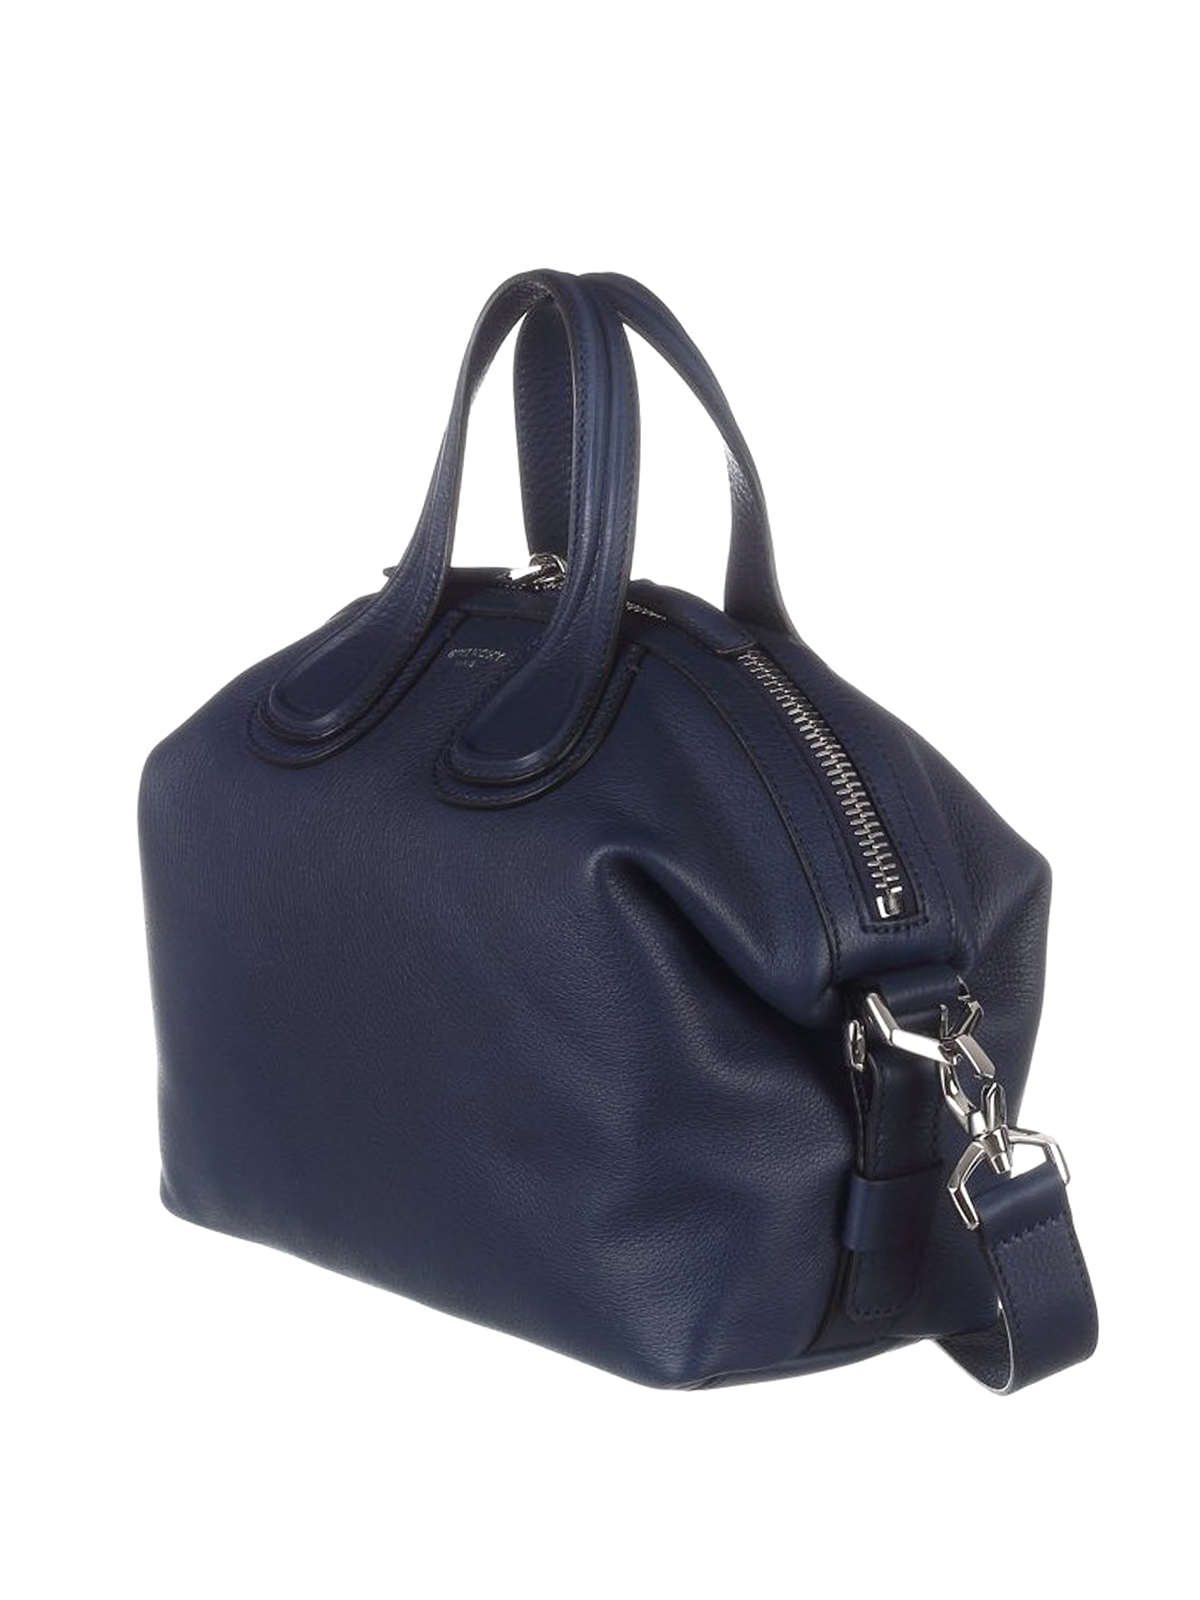 42aaa0015e5 GIVENCHY  bowling bags online - Nightingale small blue bowling bag